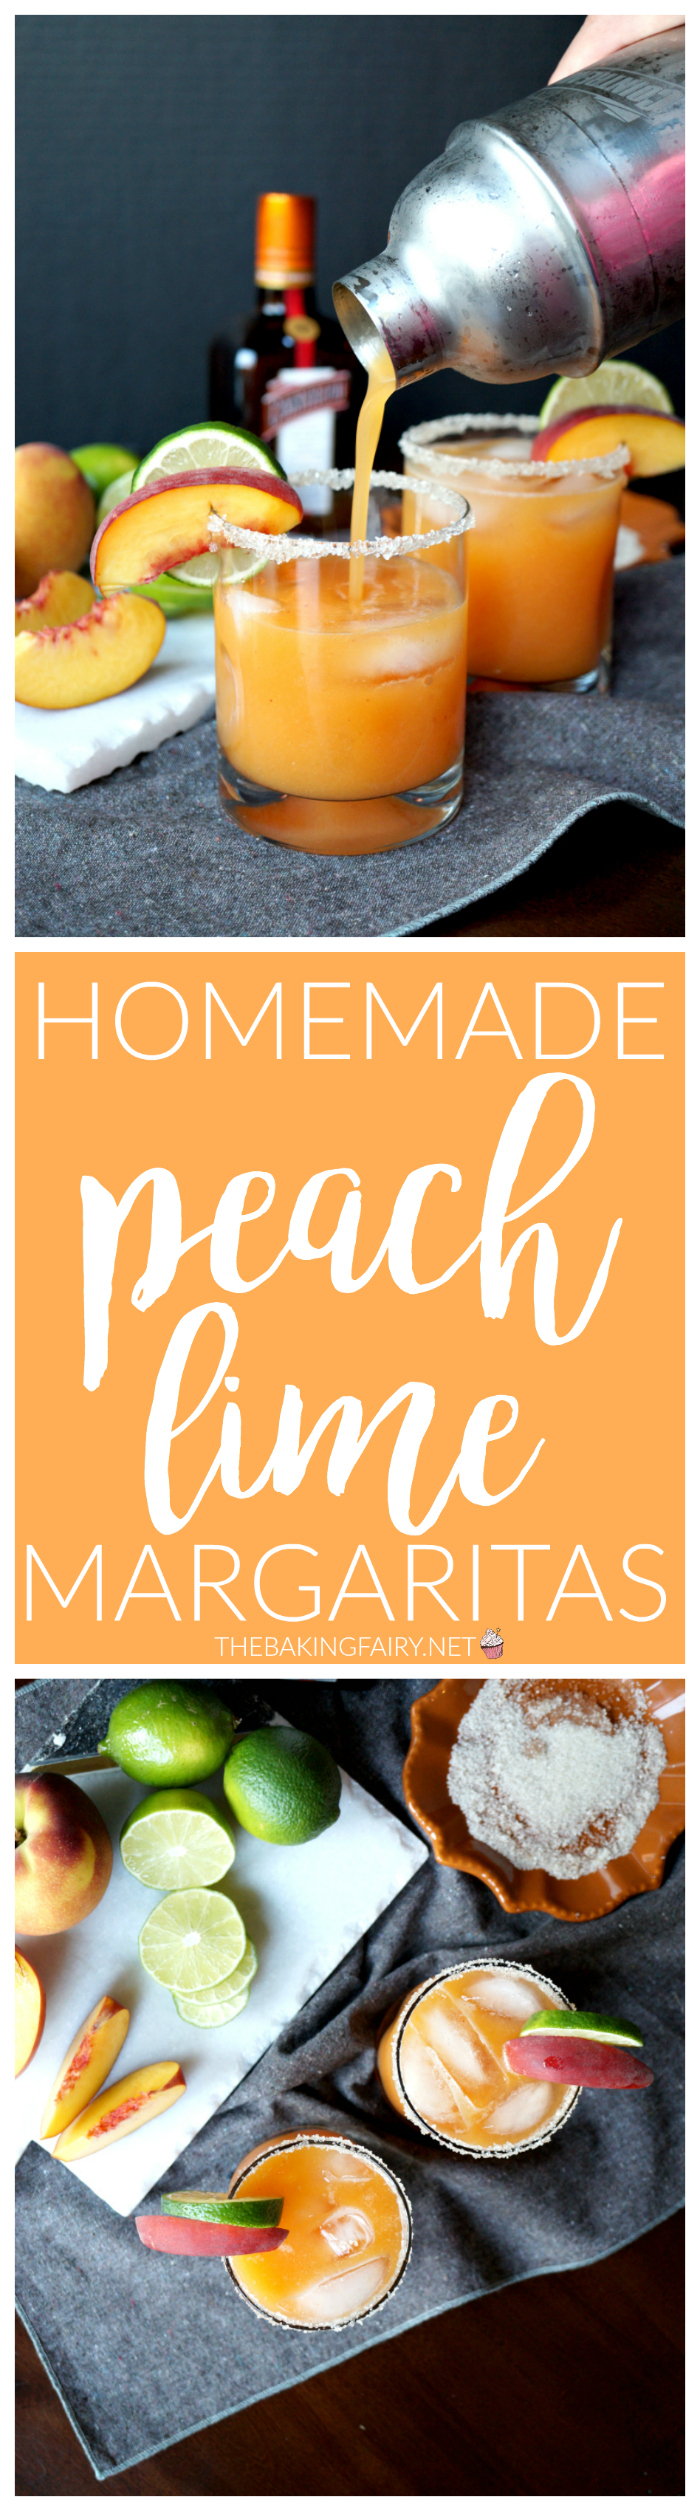 homemade peach lime margaritas | The Baking Fairy